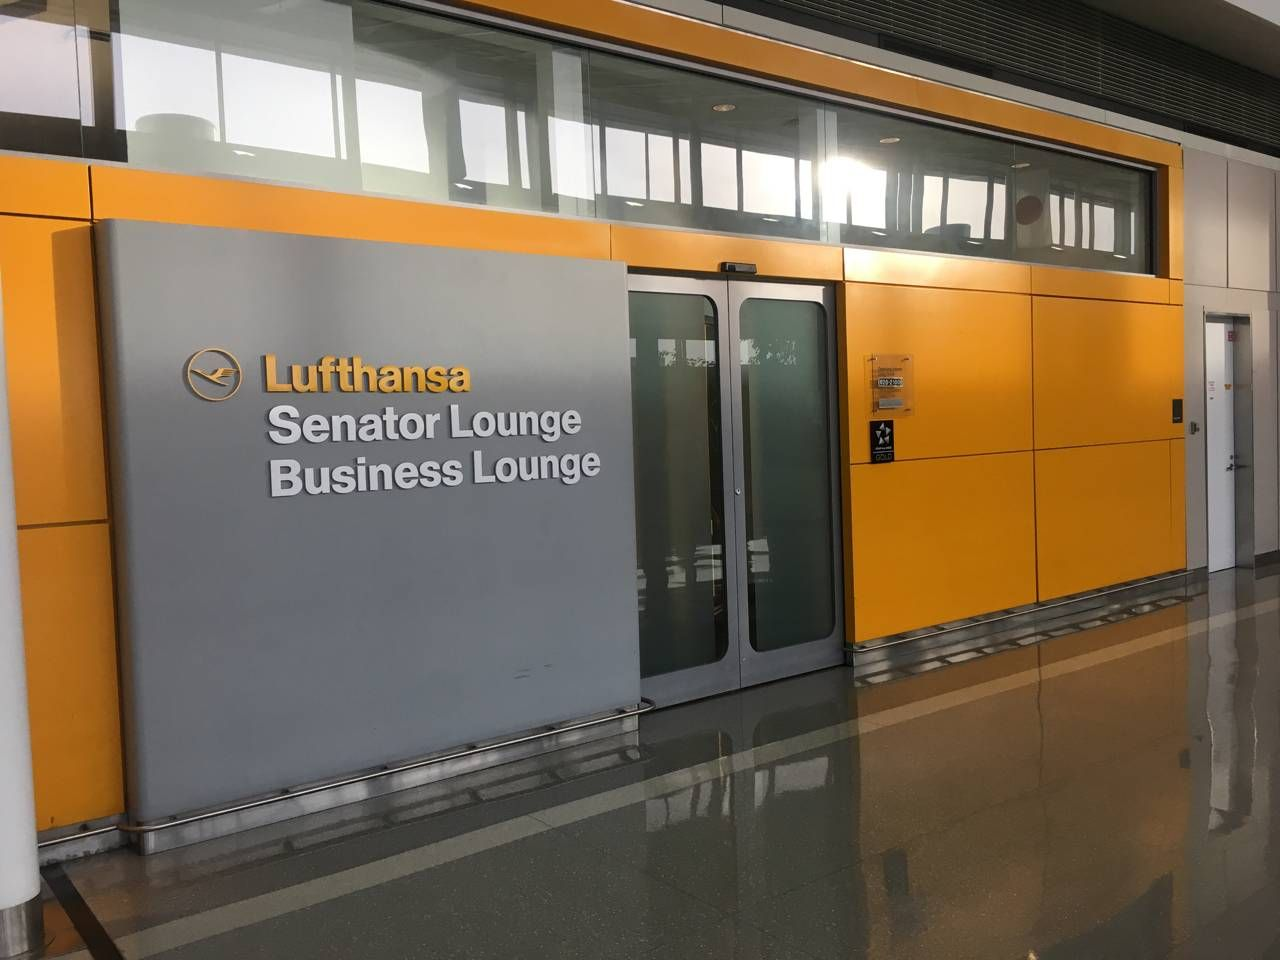 Lufthansa Business e Senator Lounge – Aeroporto de Washington (IAD)